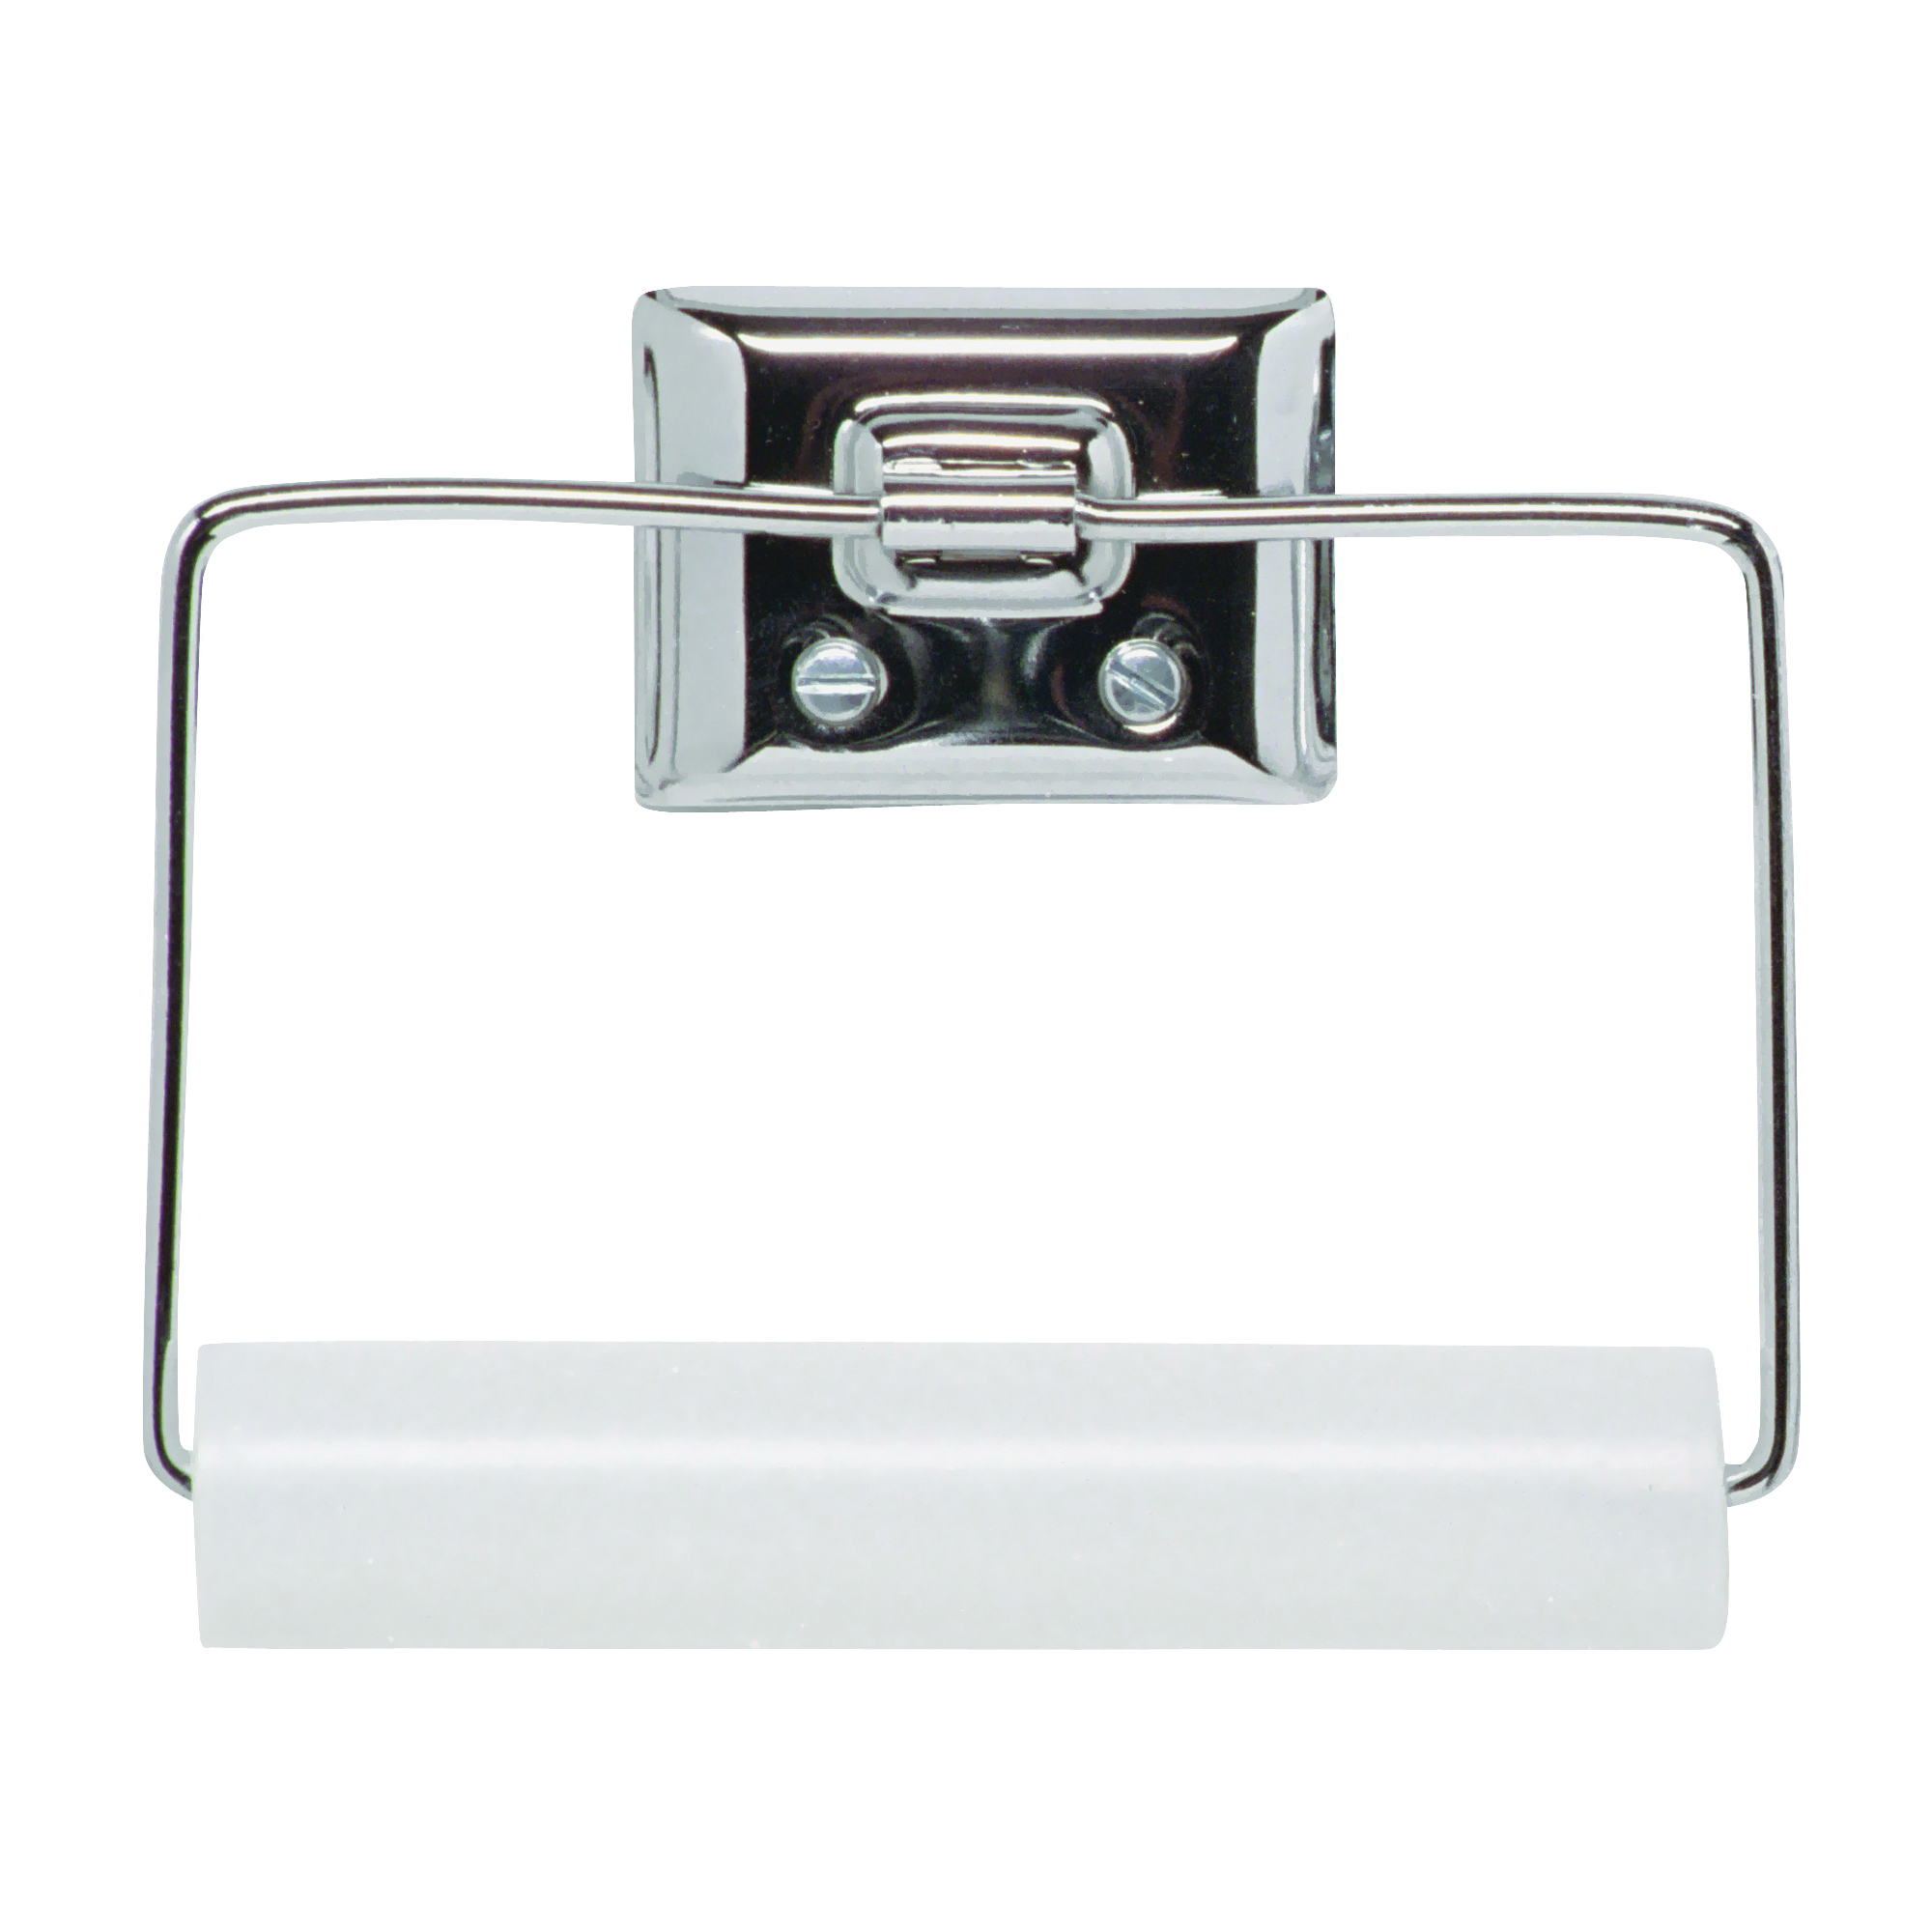 Picture of DECKO 38090 Toilet Paper Roller, Steel, Chrome